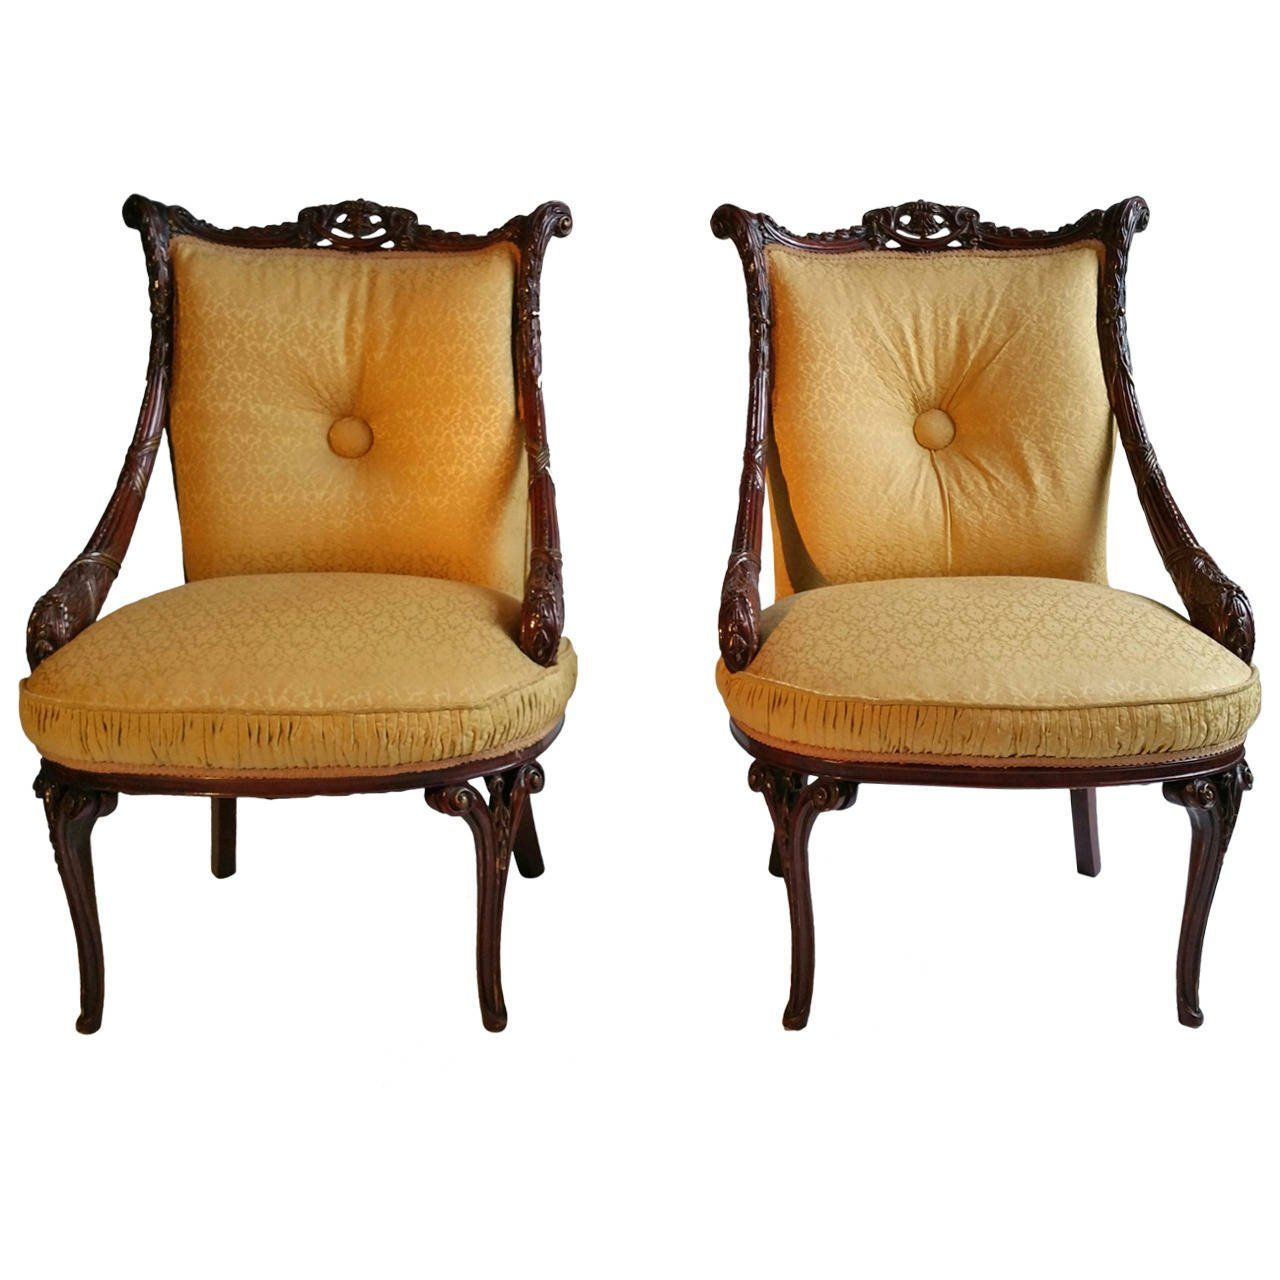 Pair Of 1940s Hollywood Regency Chairs Attributed To Grosfeld House